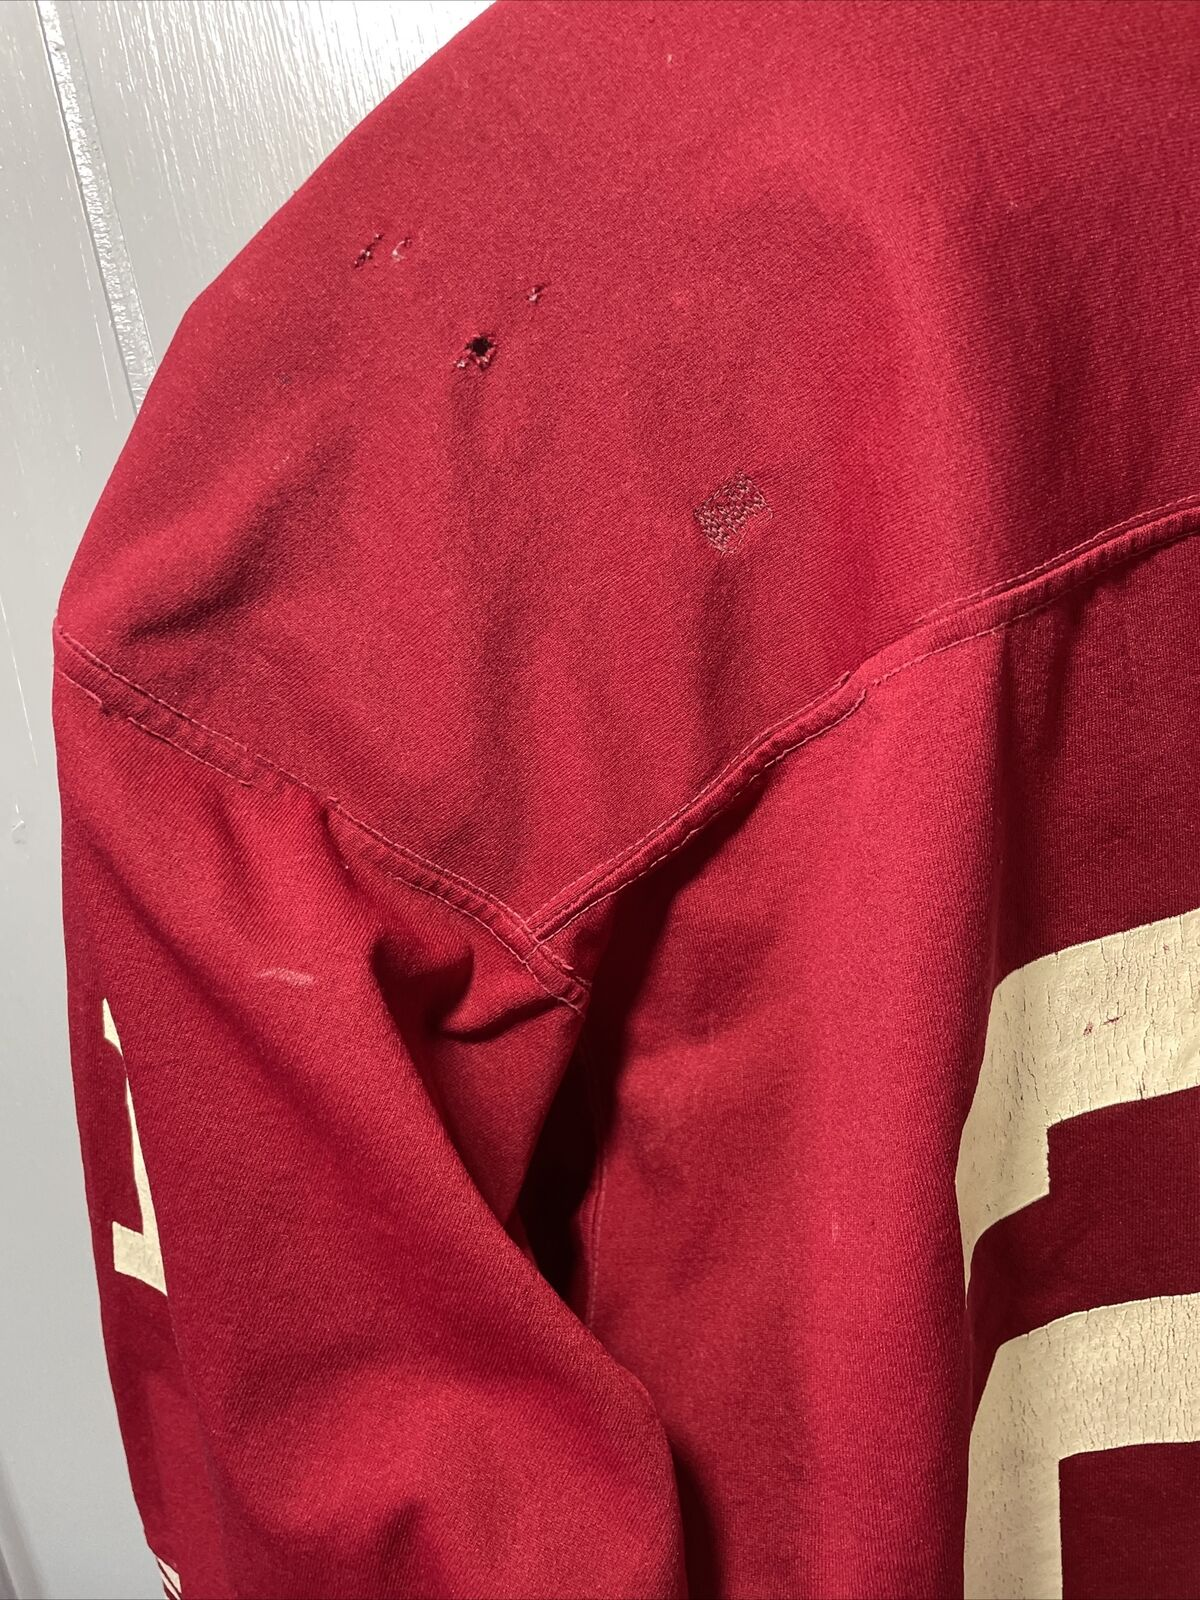 VTG 70's Russell Athletic Red Football Jersey #21… - image 11